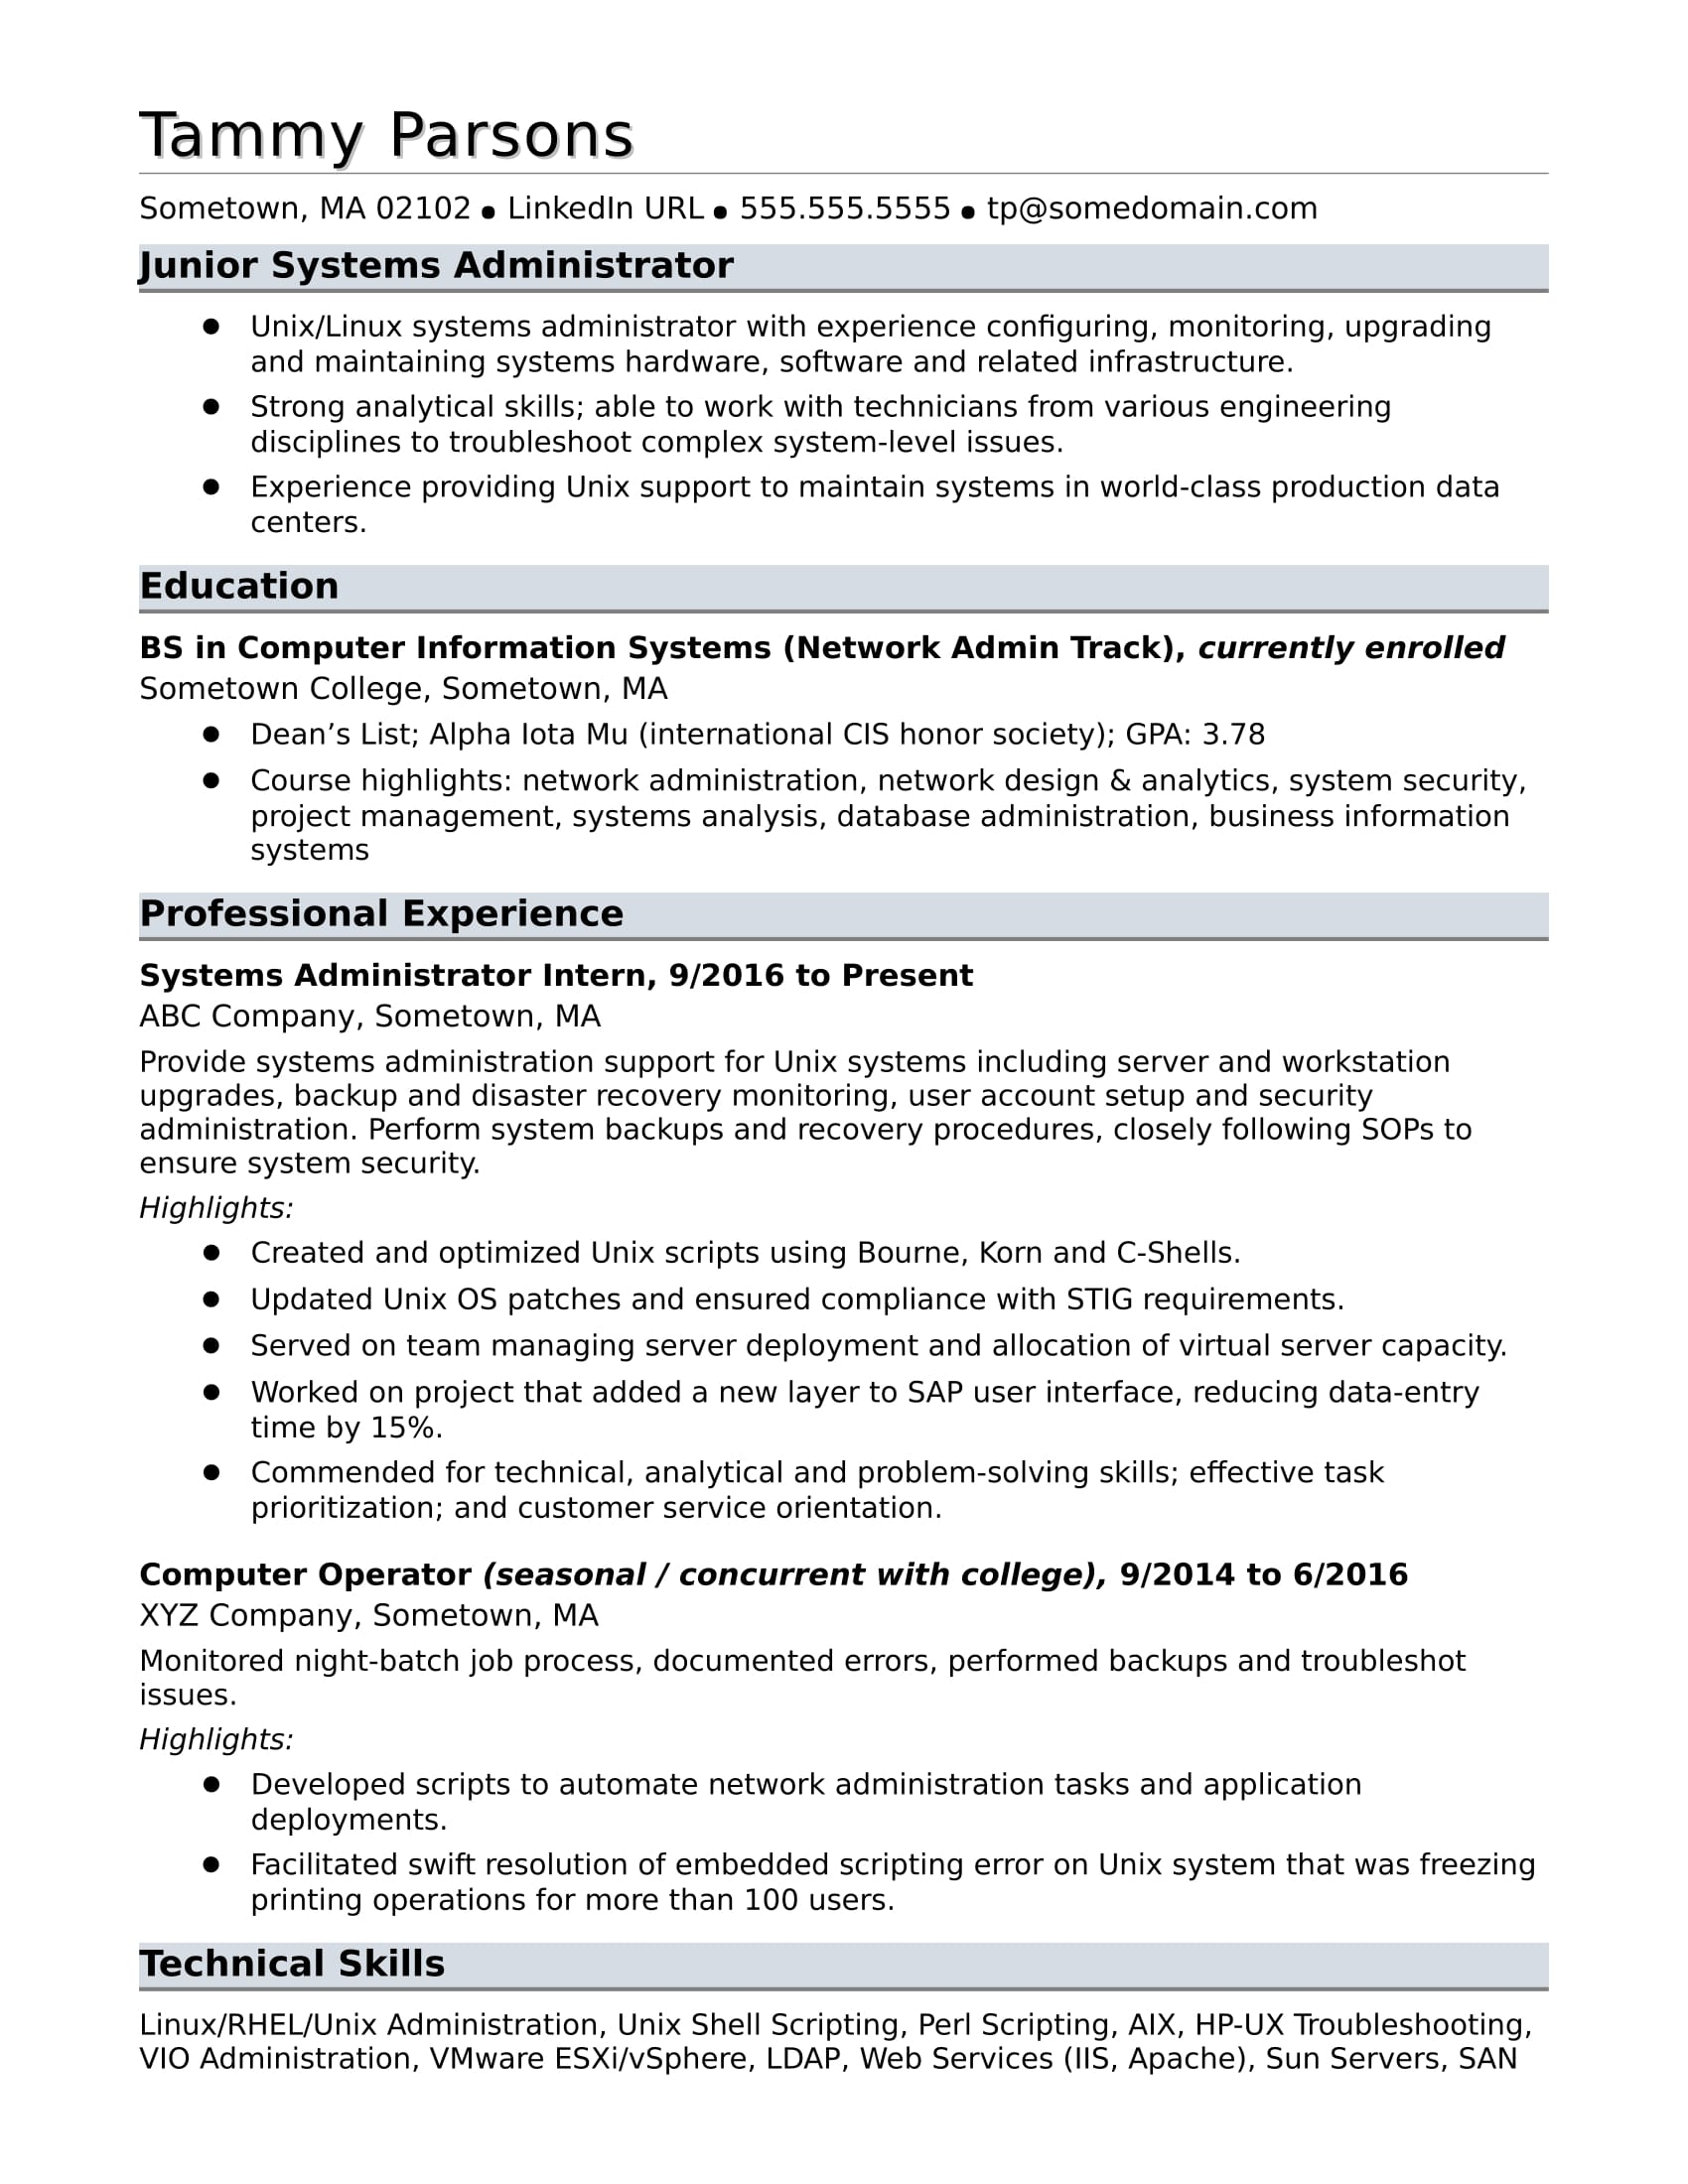 sample resume for an entry level systems administrator monster system objective Resume System Administrator Resume Objective